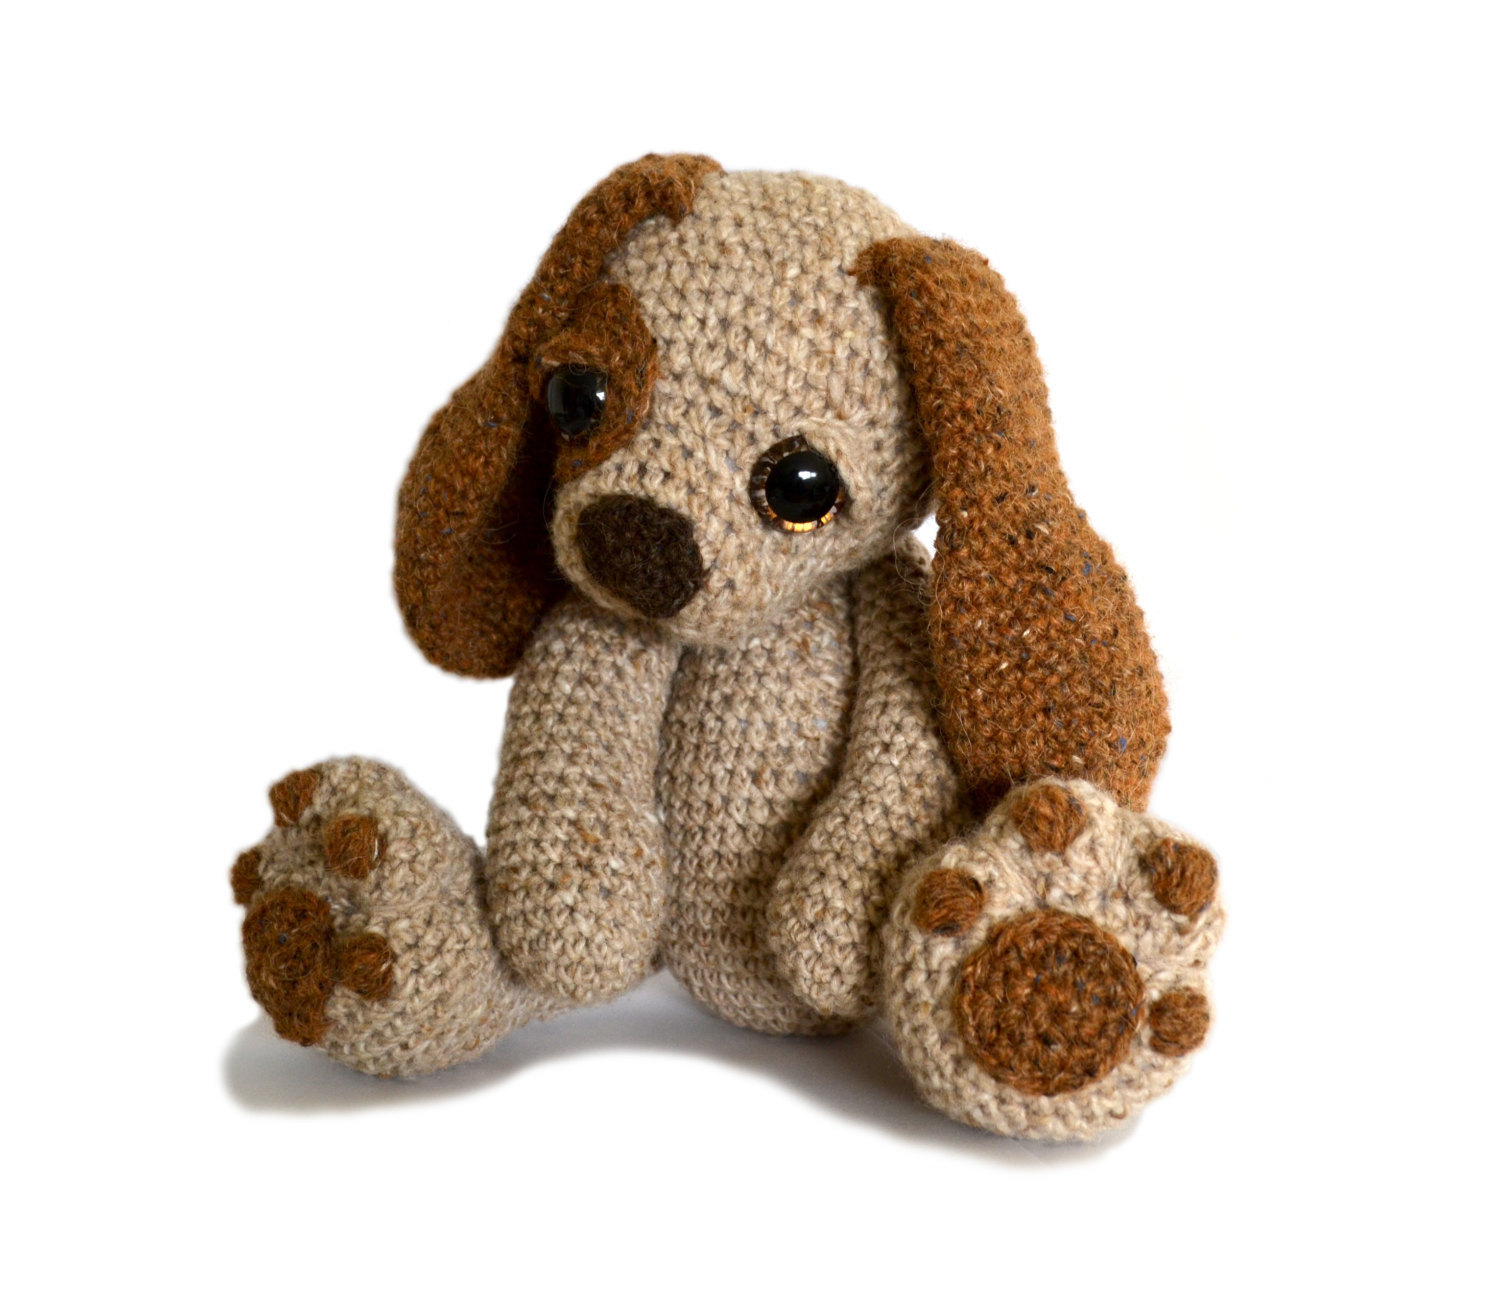 Crochet Dog Pattern Luxury Puppy Dog Amigurumi Crochet Pattern Pdf Instant Download Of Brilliant 41 Images Crochet Dog Pattern